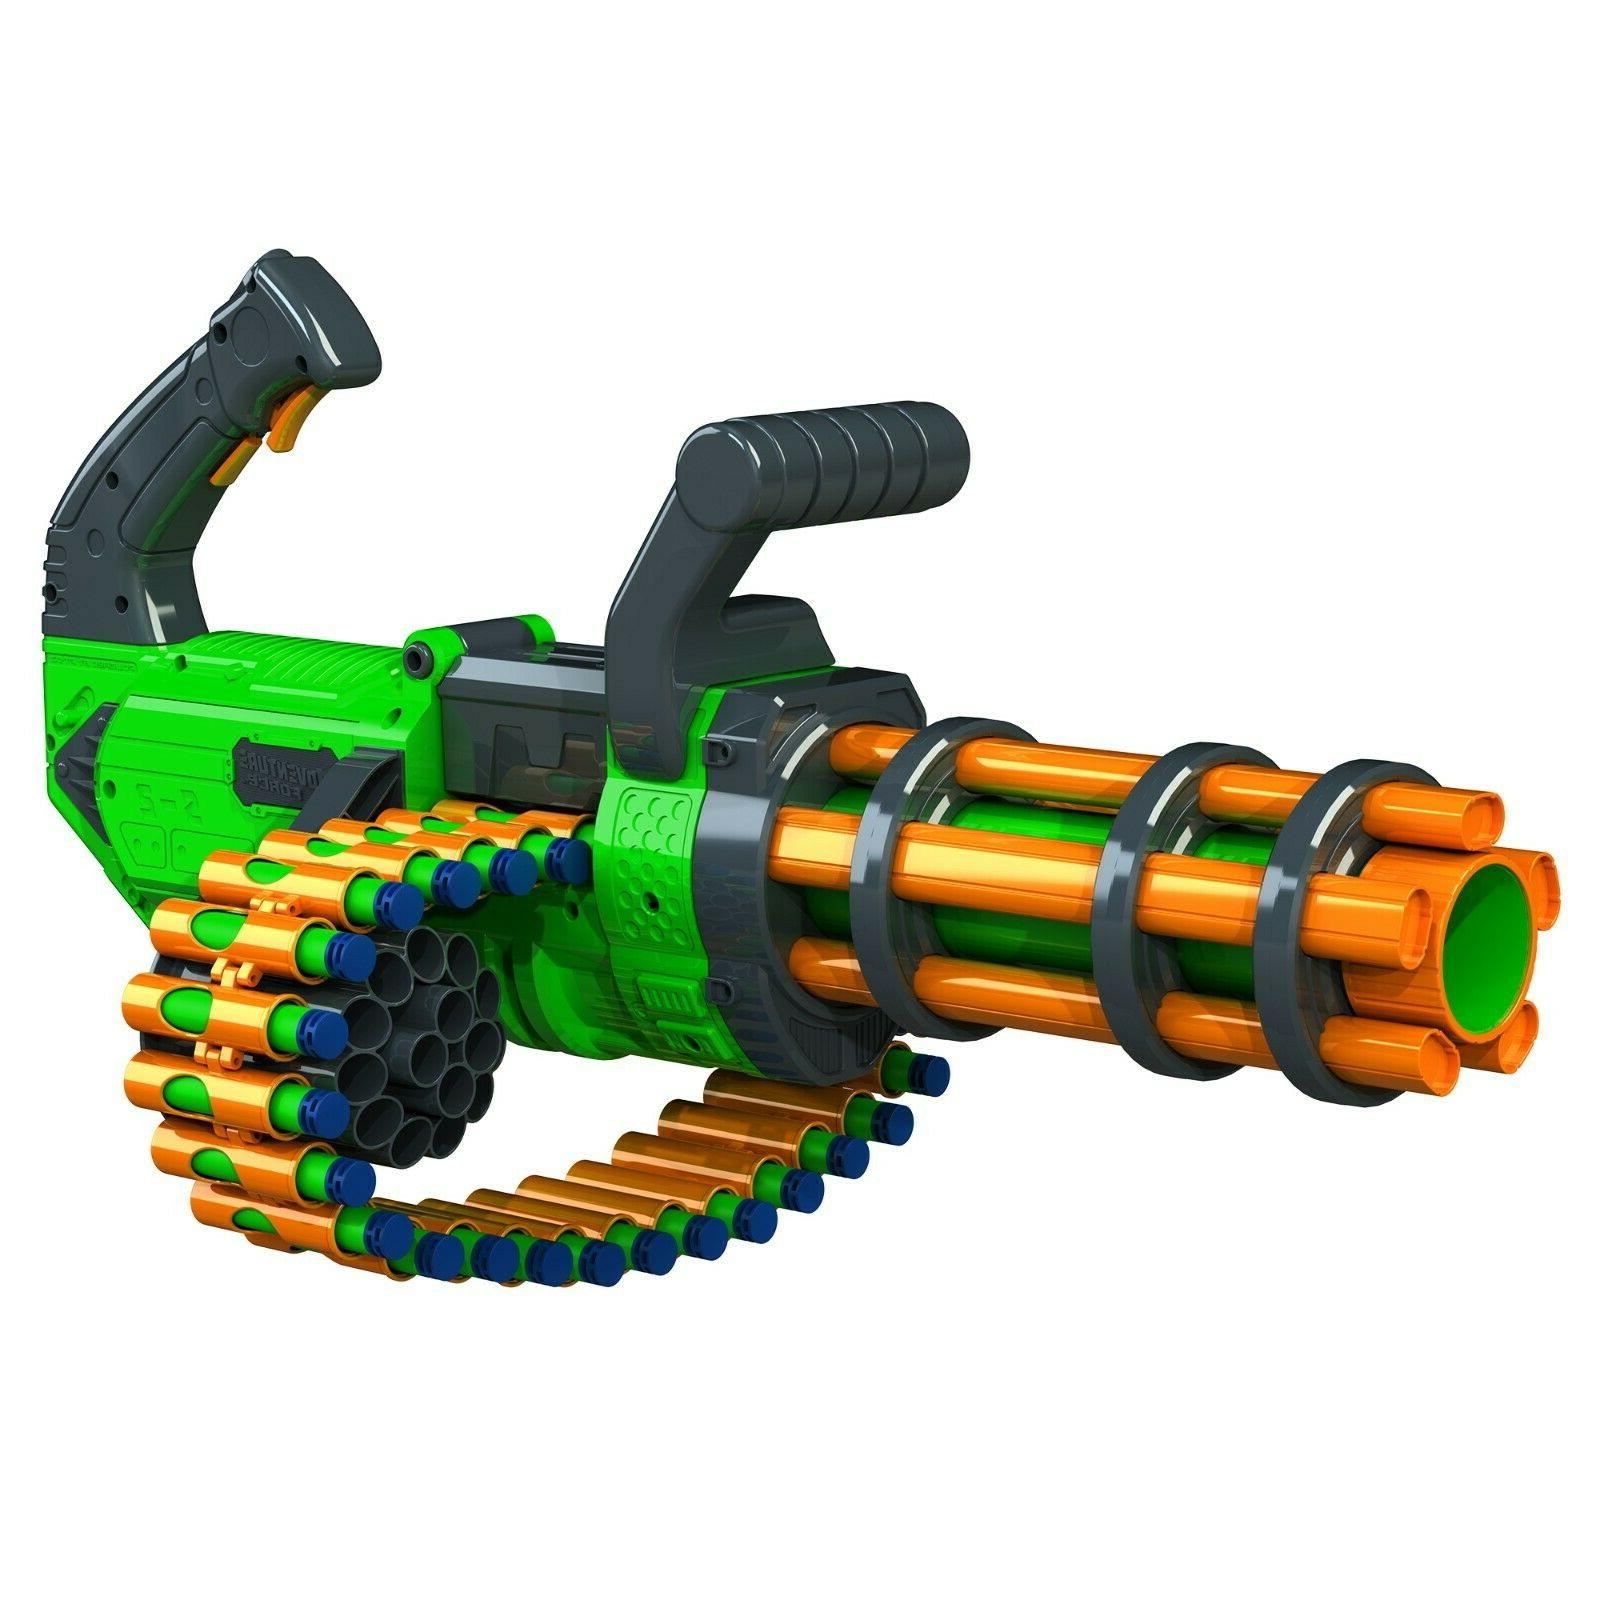 gatling machine gun motorized automatic rapid fire